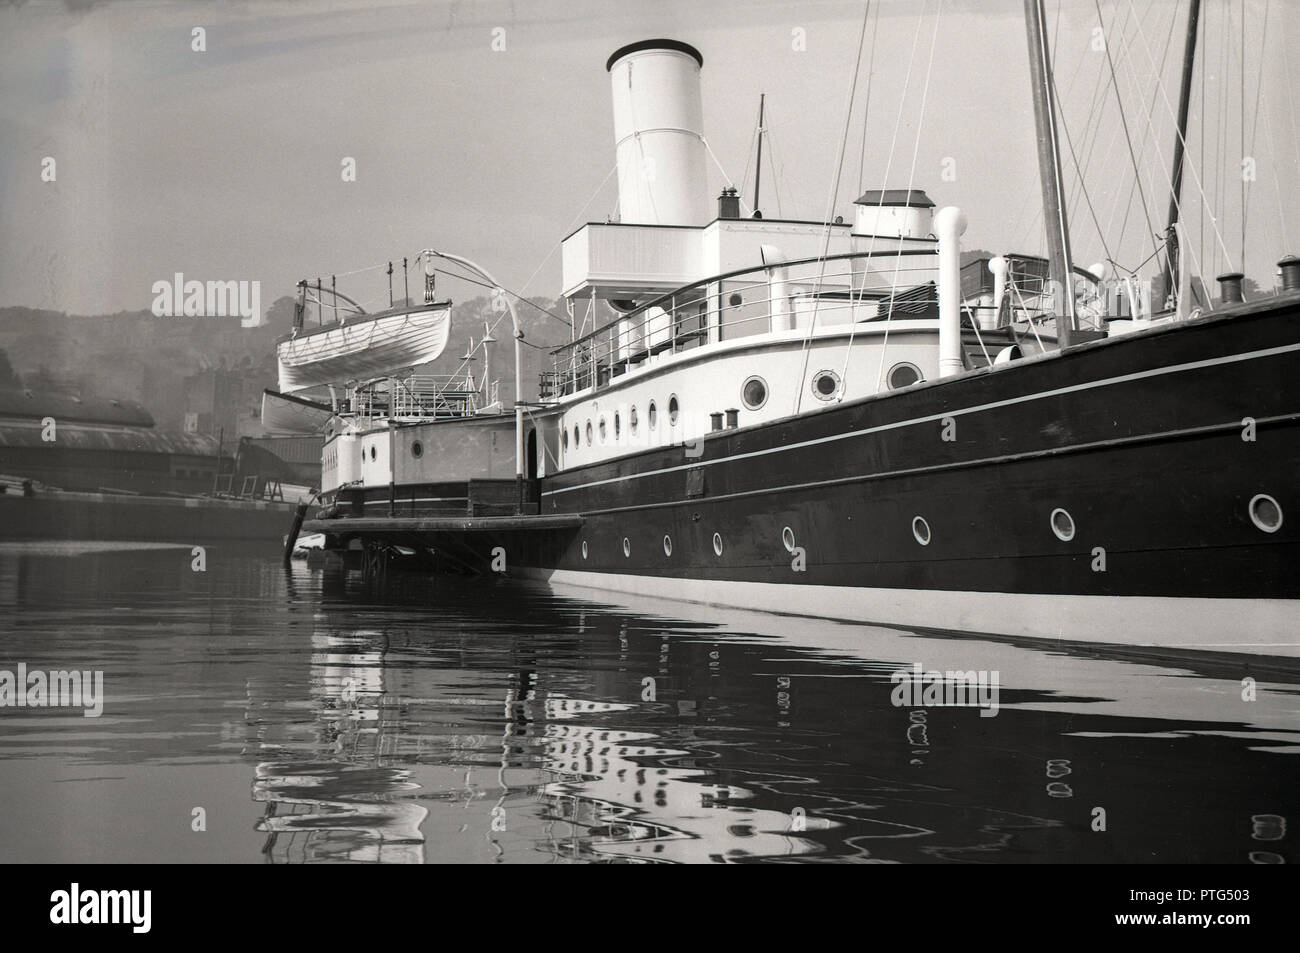 1950s, historical, passenger steamship moored in Oban harbour, Scotland, UK. The bay at Oban in the Firth of Lorn became the gateway to the Western highlands and Islands of Scotland for visitors travelling by ship. - Stock Image